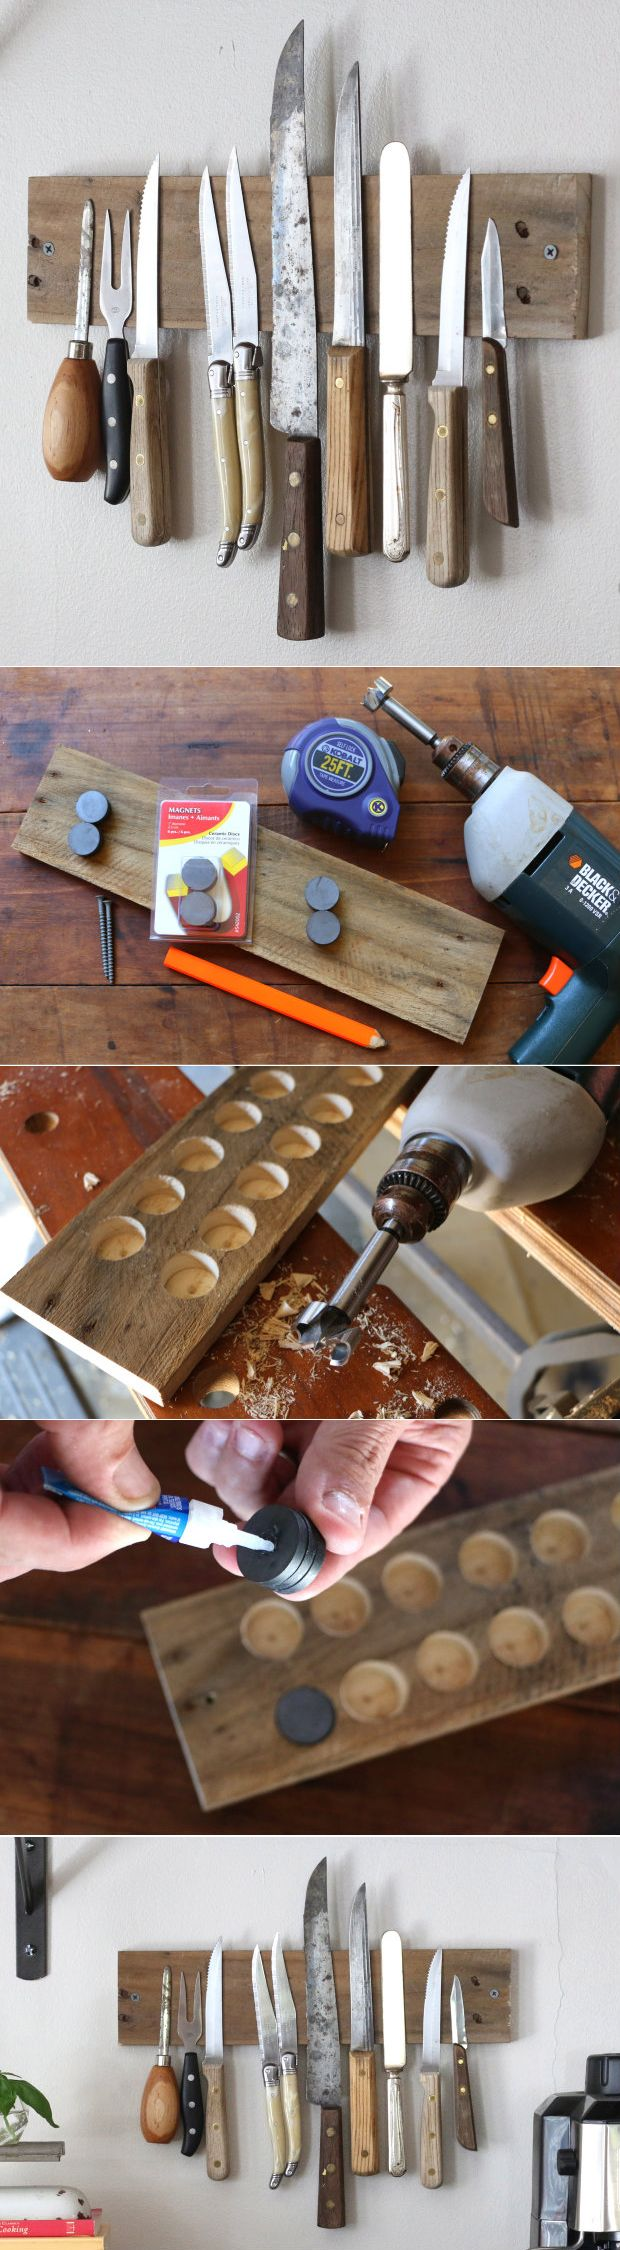 So cool! A DIY magnetic wall display in your kitchen of your favorite knives. Functional too!